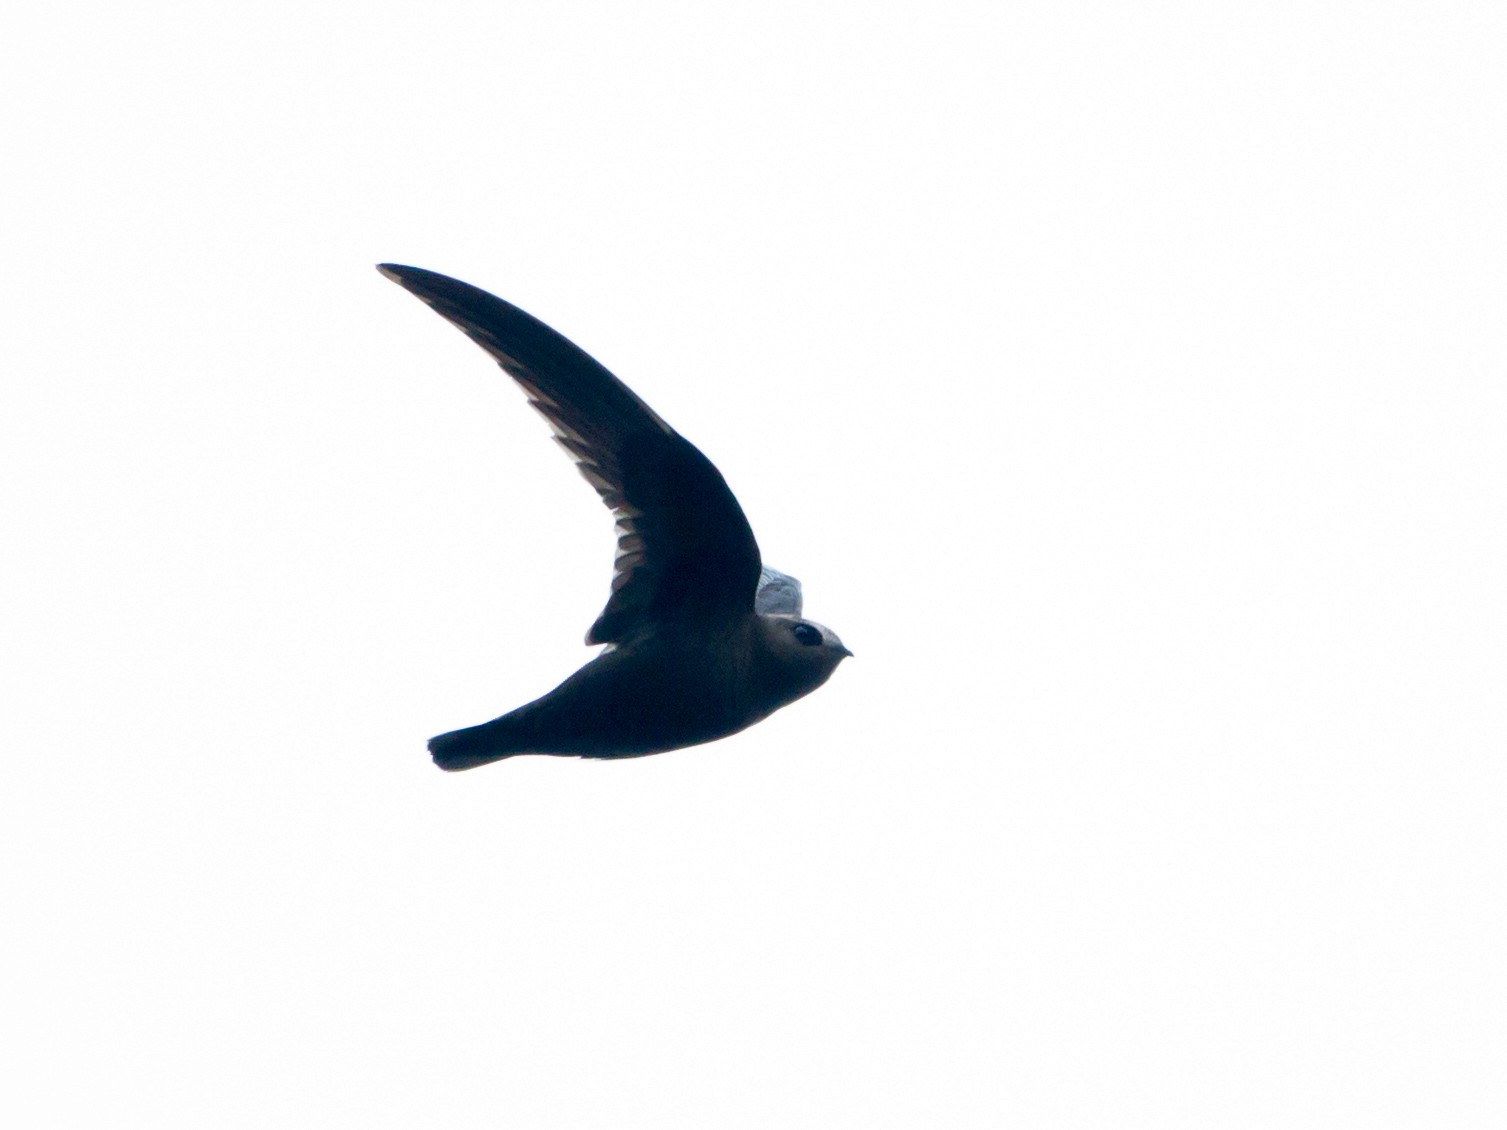 Black Swift - Brian Sullivan